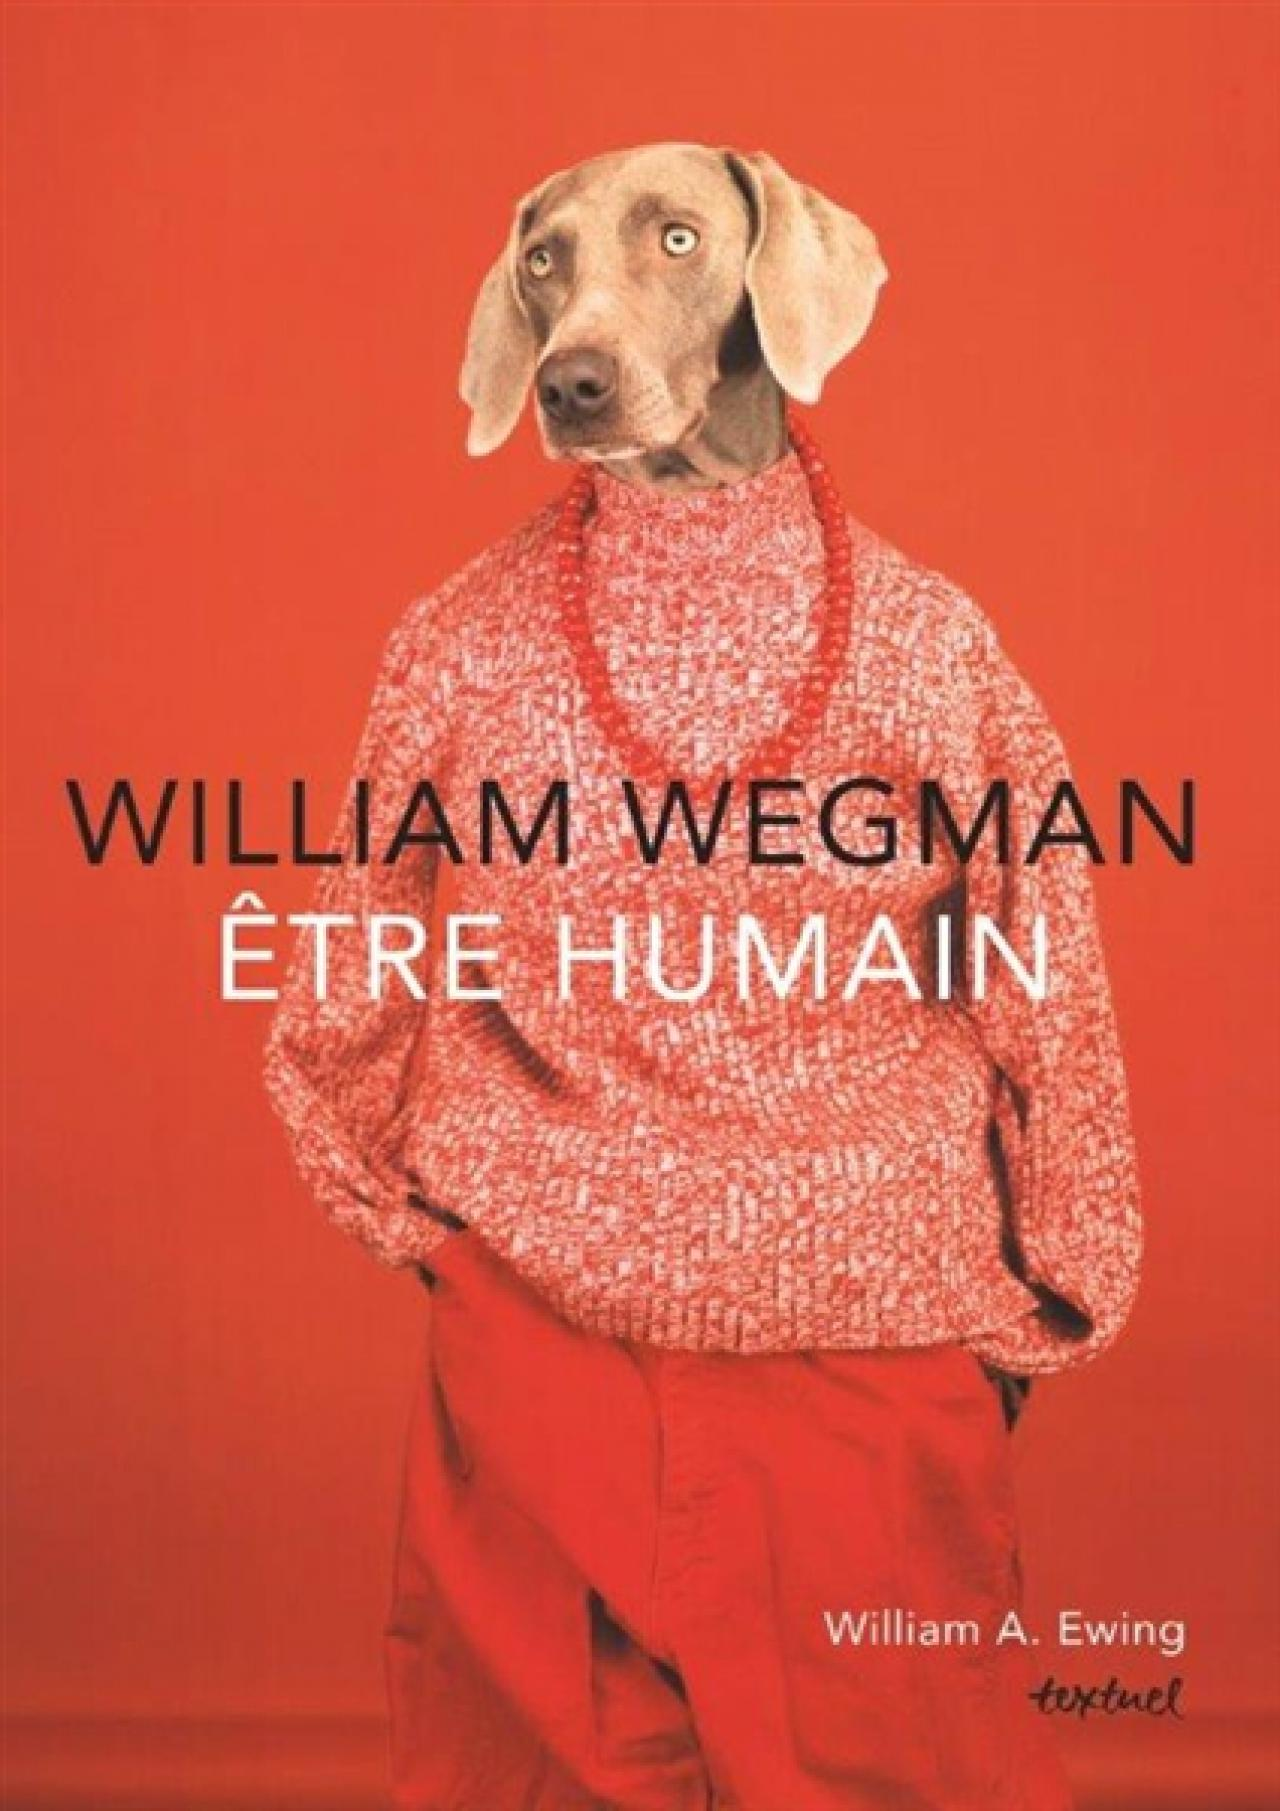 William Wegman: Etre Humain